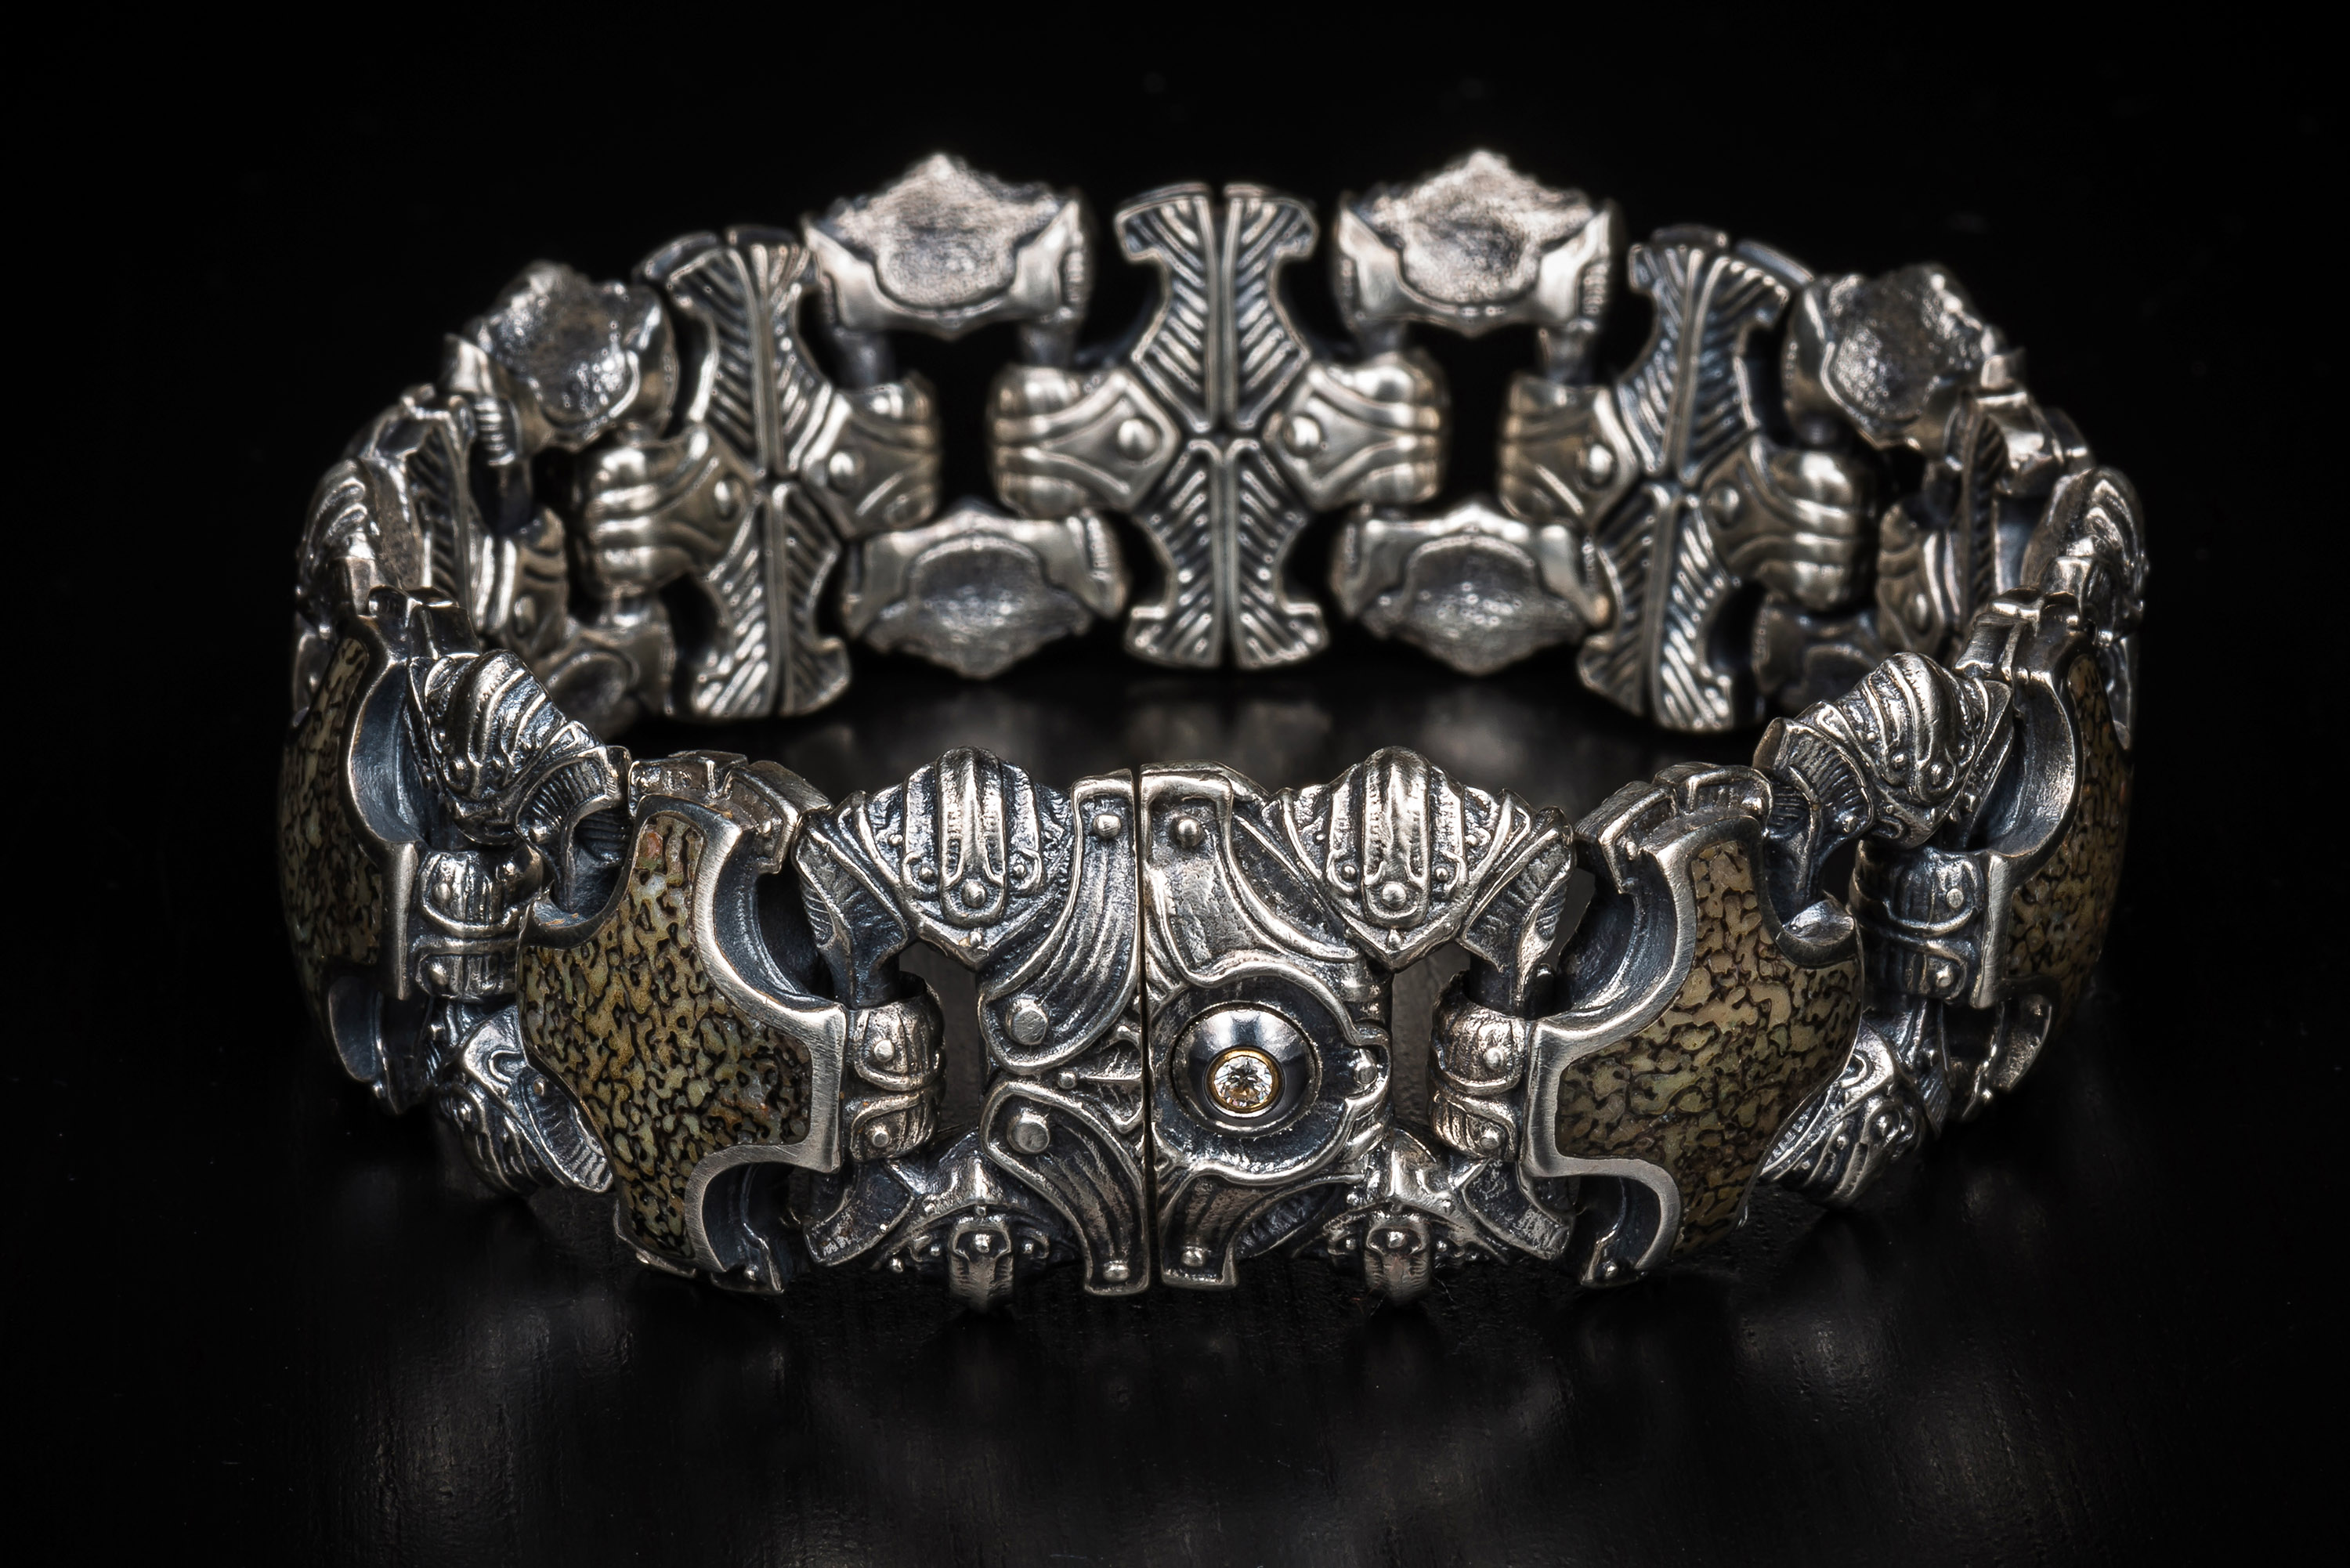 William Henry Men S Jewelry Collection Captures The